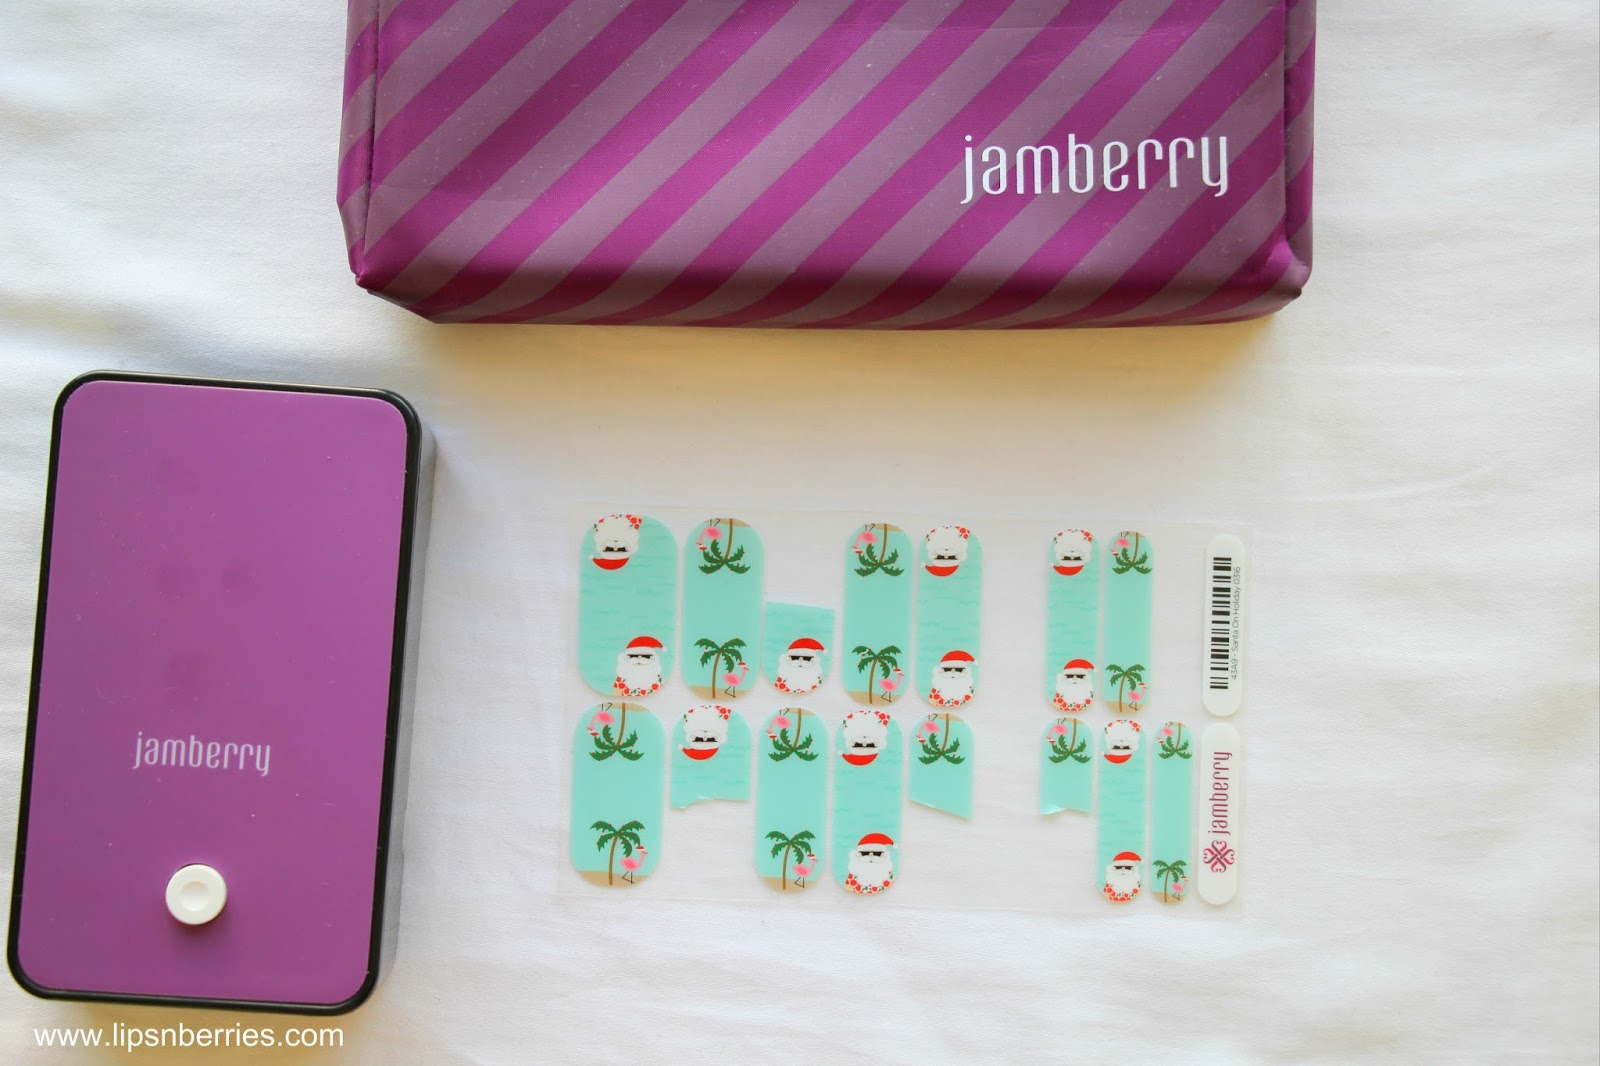 Lips n Berries!: Jamberry Nails! Words of Wisdom from a Jamberry Noob